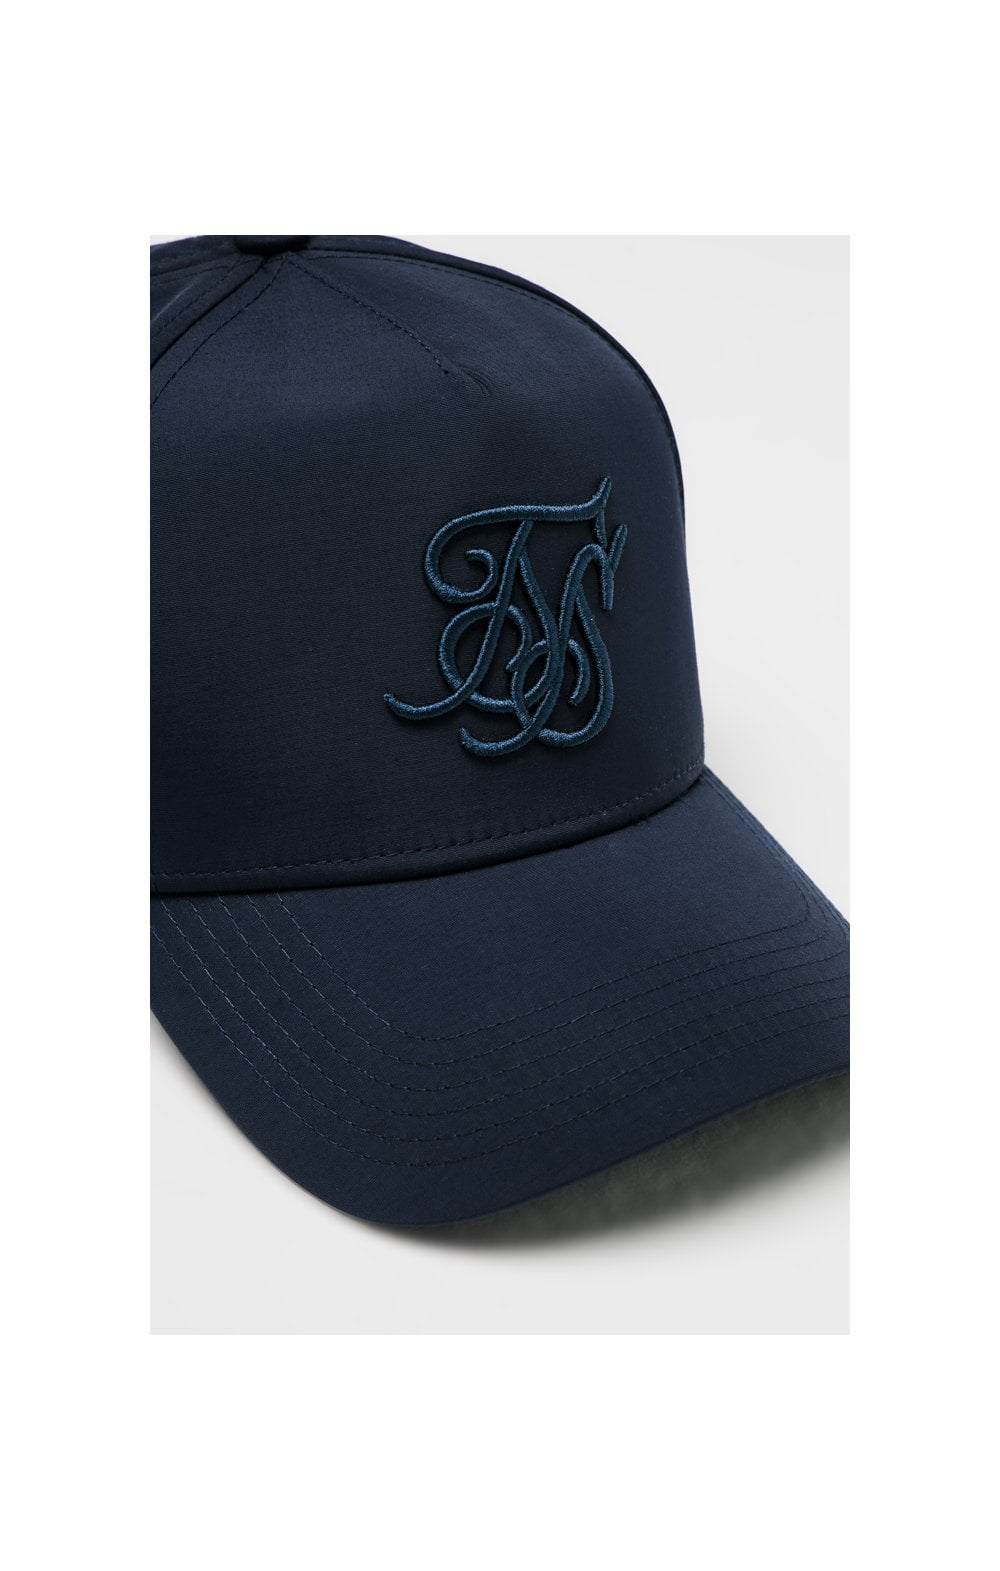 Load image into Gallery viewer, SikSilk Crushed Nylon Full Trucker - Navy (1)